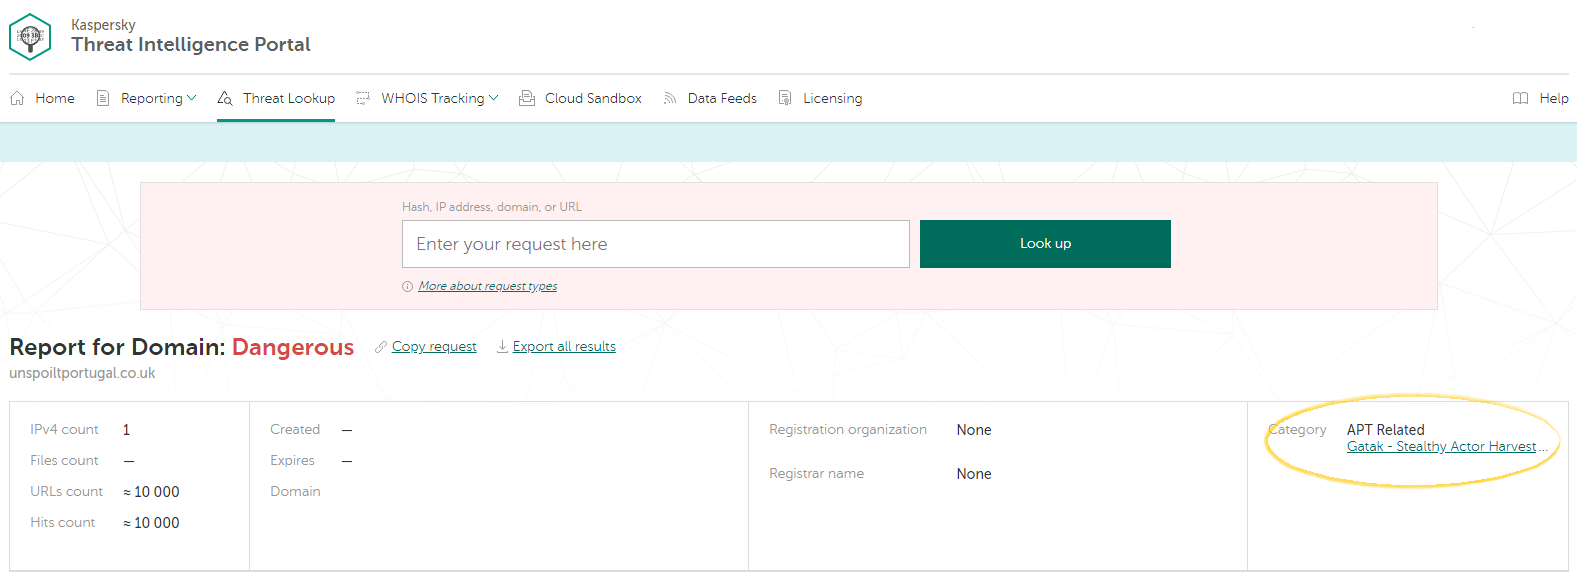 Report for domain